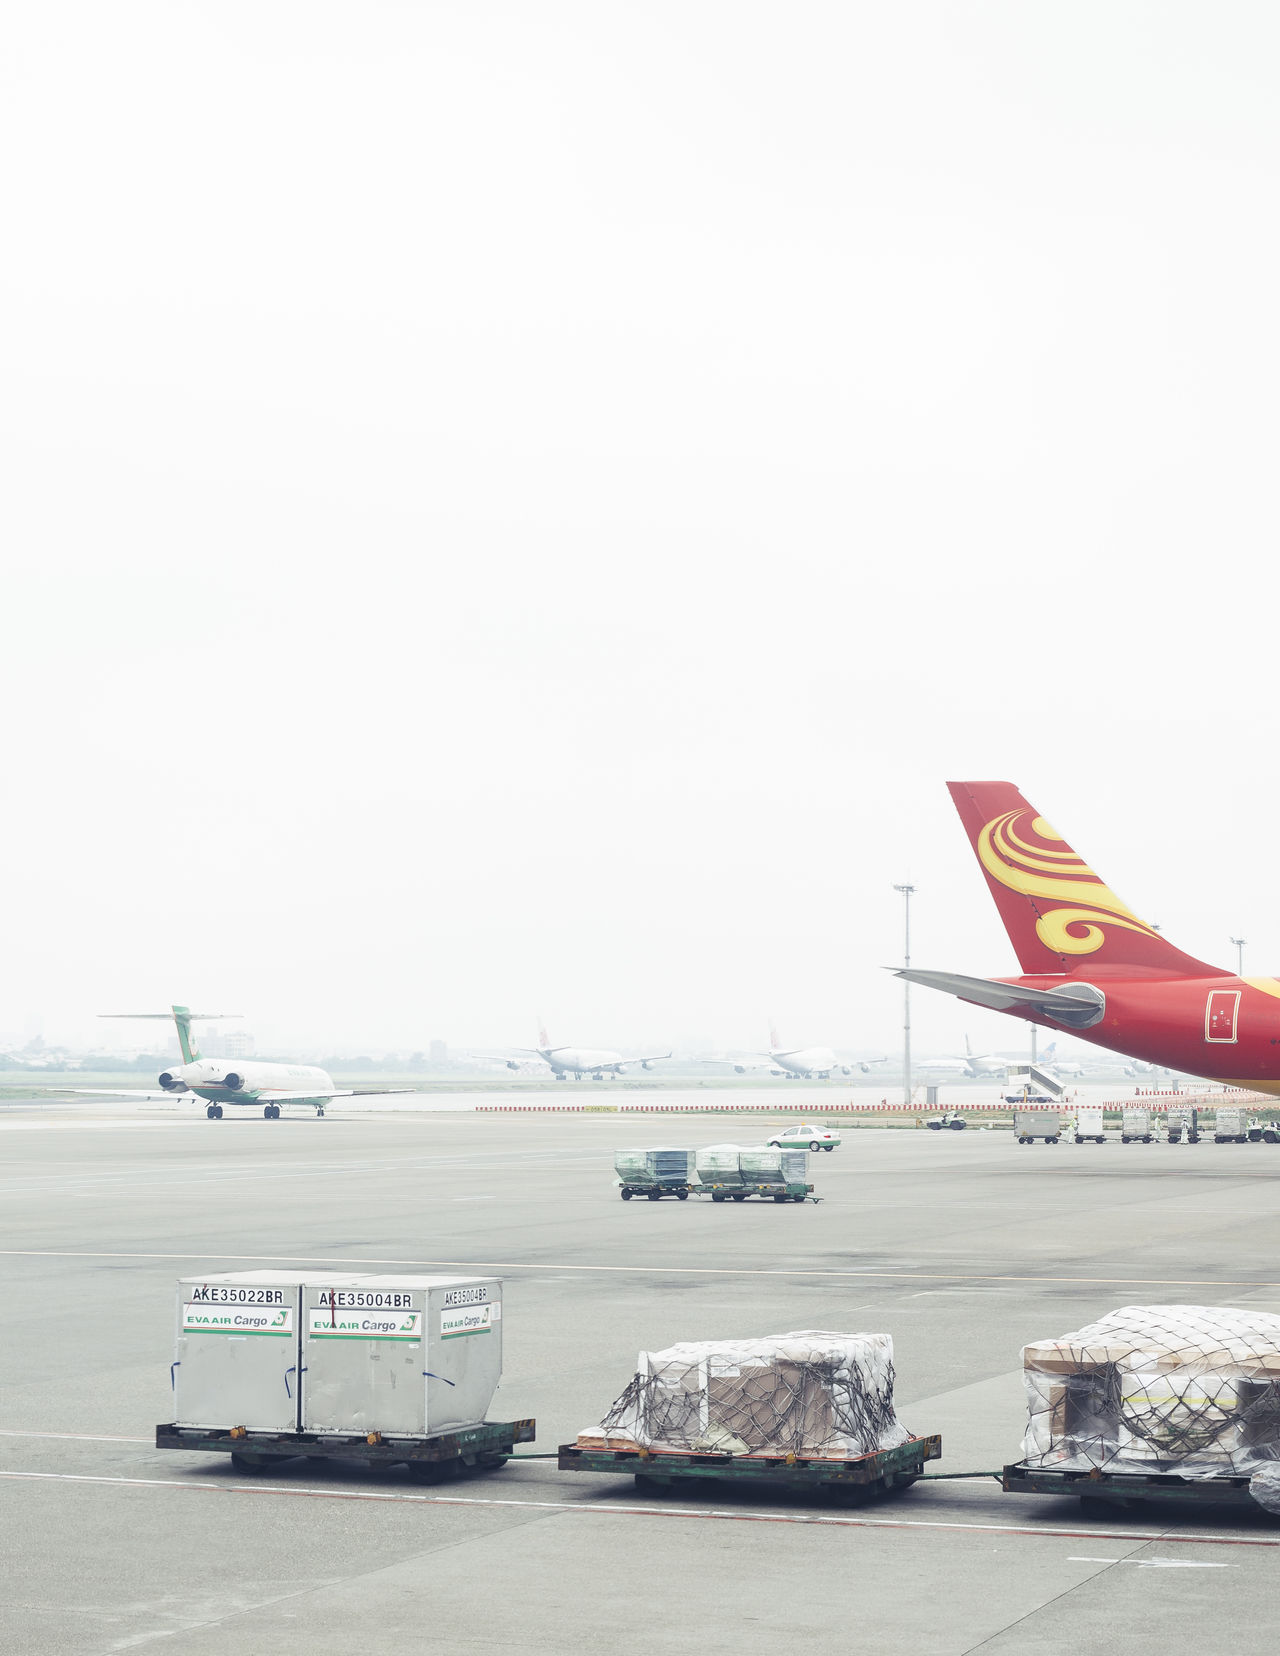 Taipei Airport Aerospace Industry Air Vehicle Airplane Airport Airport Runway Boarding Business Business Finance And Industry Cargo Cart Day Fog Foggy Day Foggy Morning Goods Minimal No People Platform Post Transport Transportation Transportation Travel Travel Photography Traveling